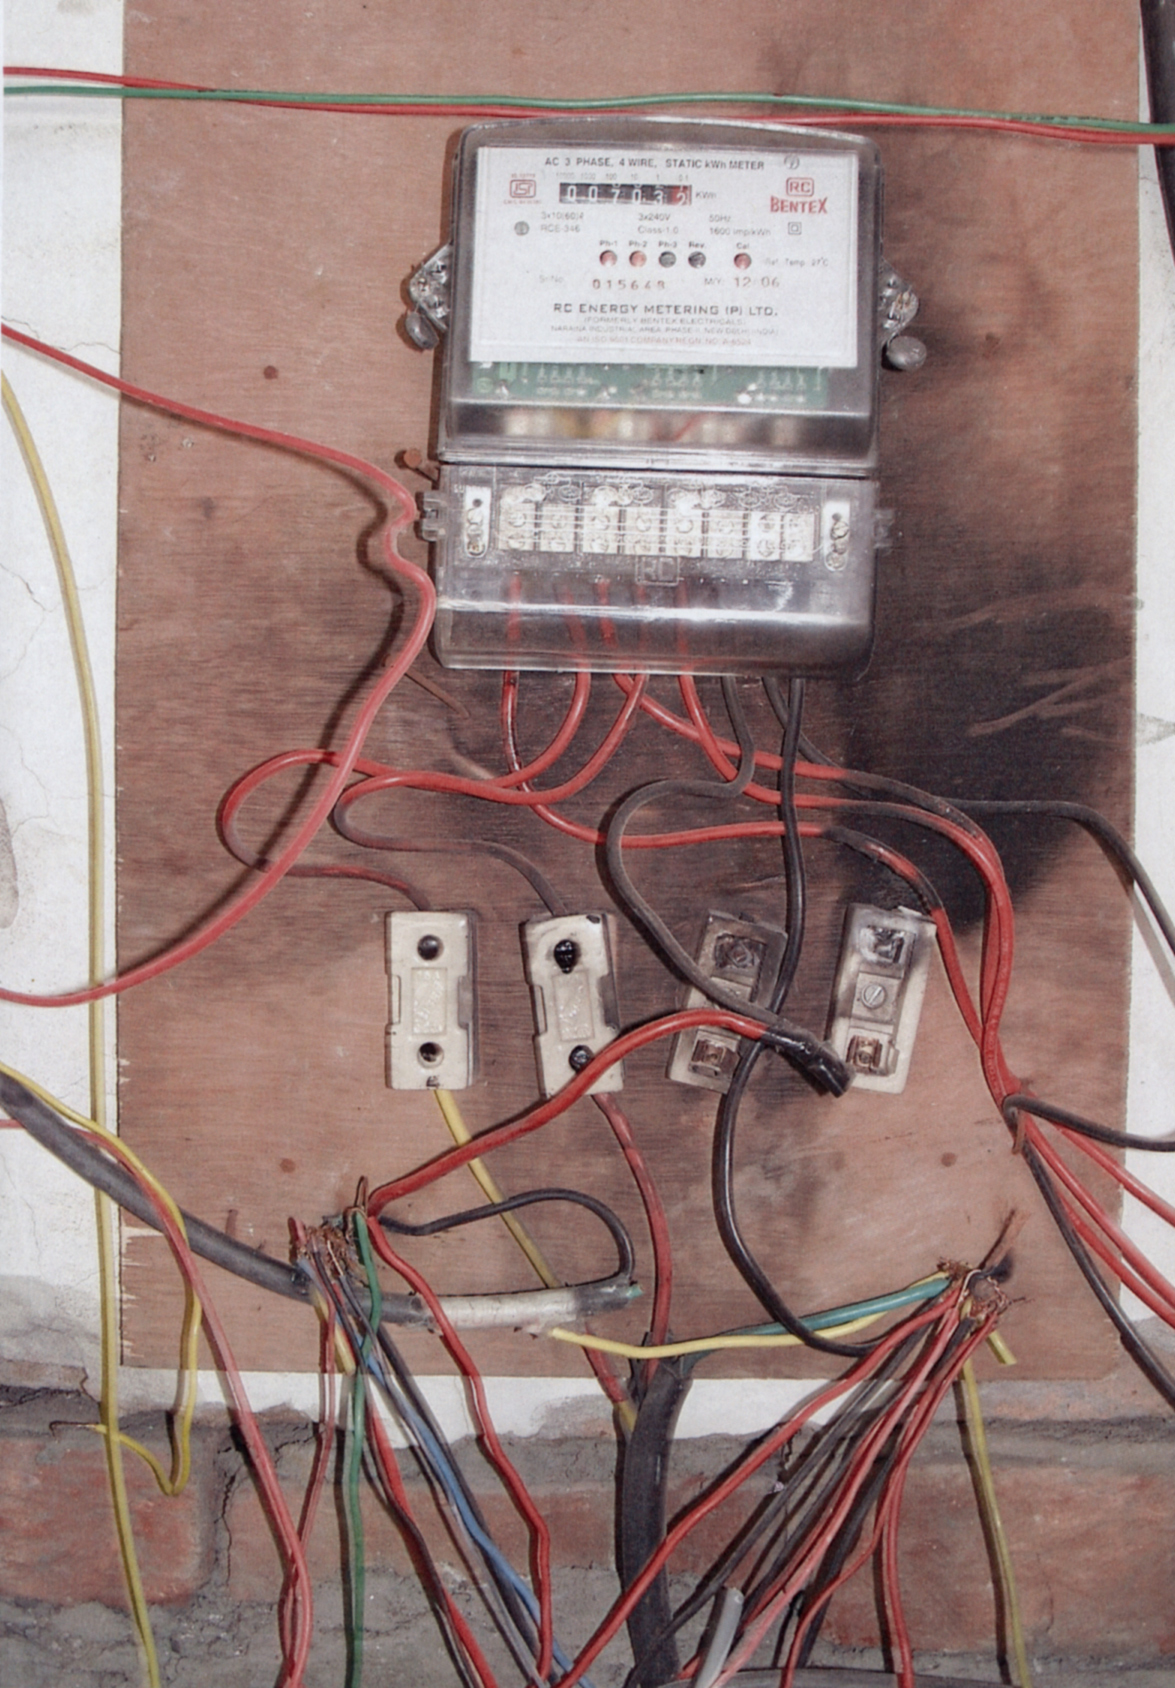 world s worst wiring the top three most shocking electrical rh eandt theiet org  kitchen electrical wiring regulations uk